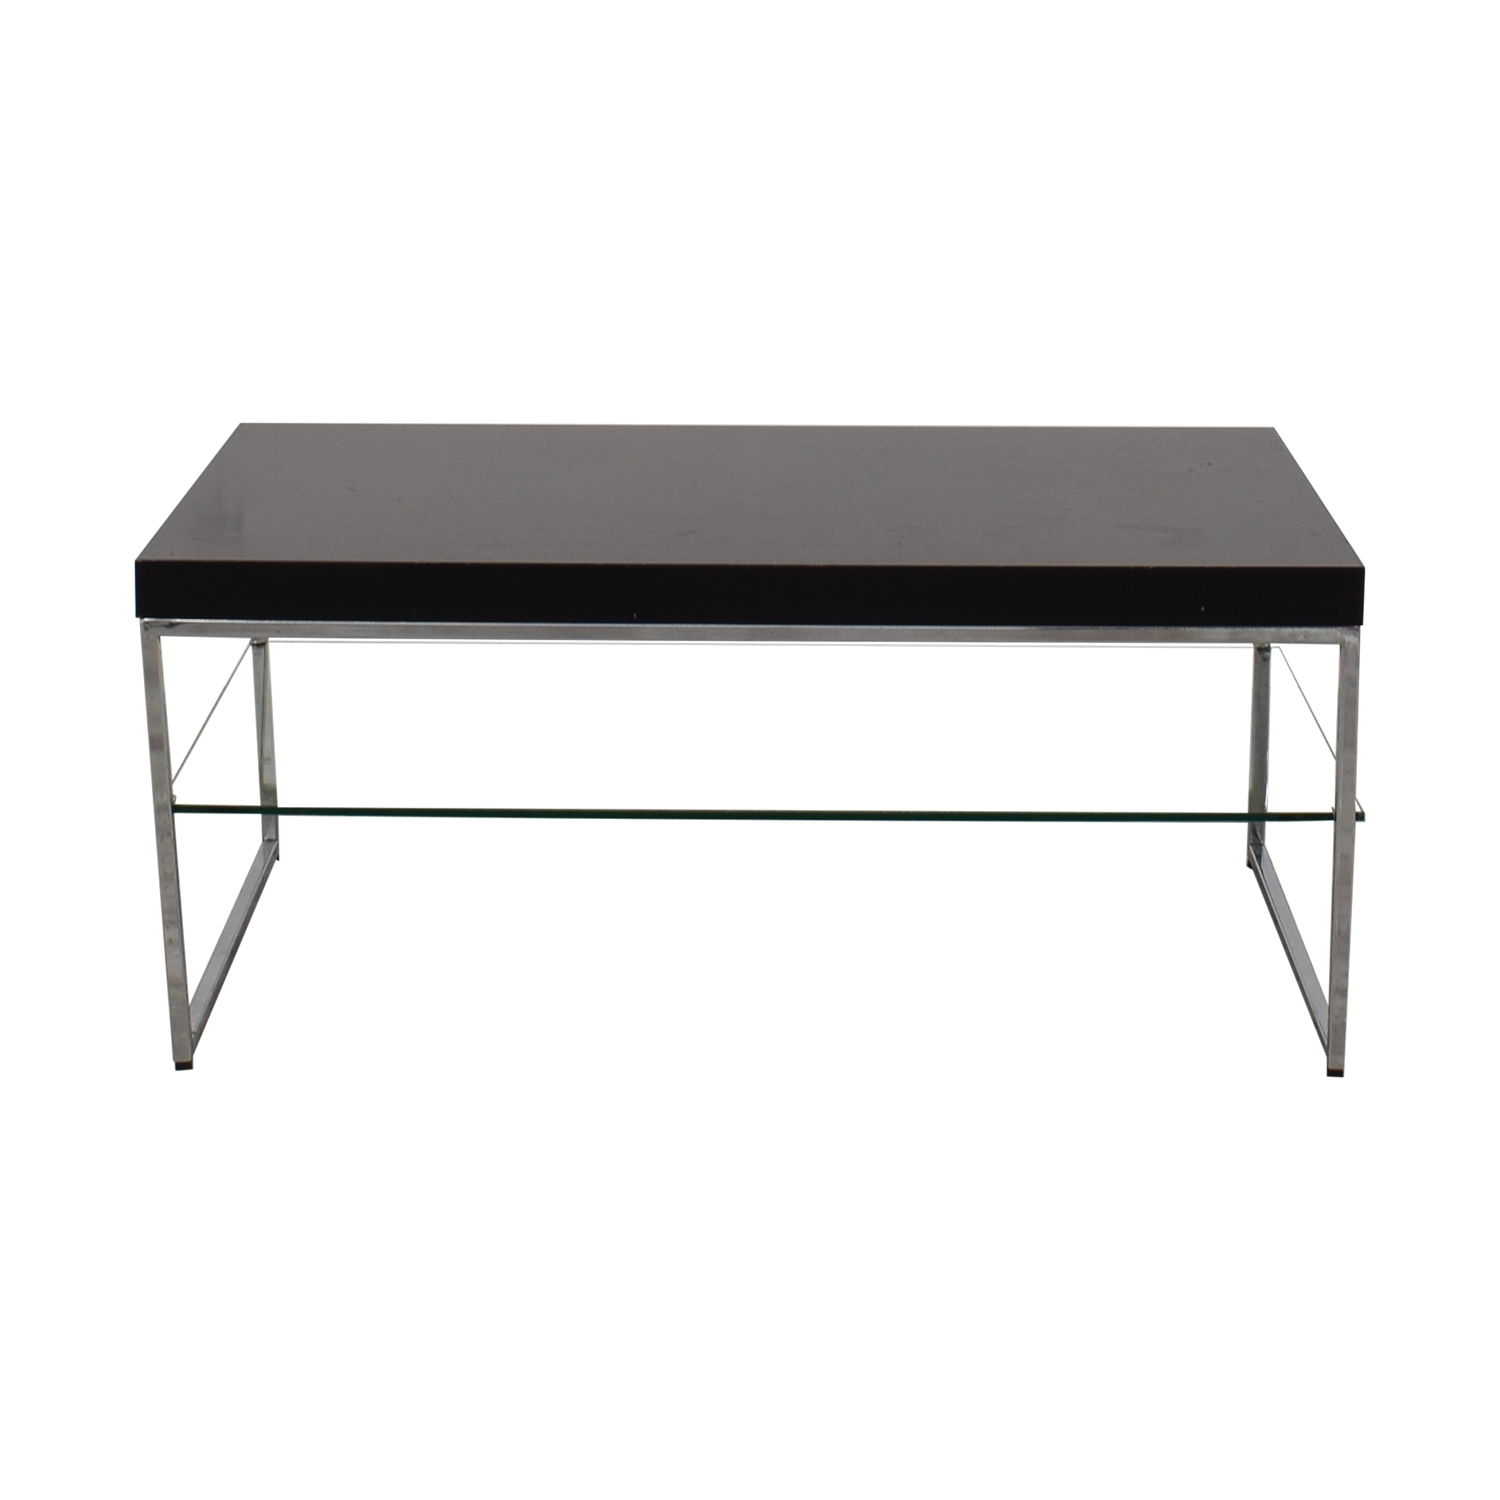 [%best And Newest Slab Small Marble Coffee Tables With Antiqued Silver Base For 24% Off – Cb2 Cb2 Slab Small Marble Coffee Table With Antiqued|24% Off – Cb2 Cb2 Slab Small Marble Coffee Table With Antiqued In Recent Slab Small Marble Coffee Tables With Antiqued Silver Base%] (View 17 of 20)